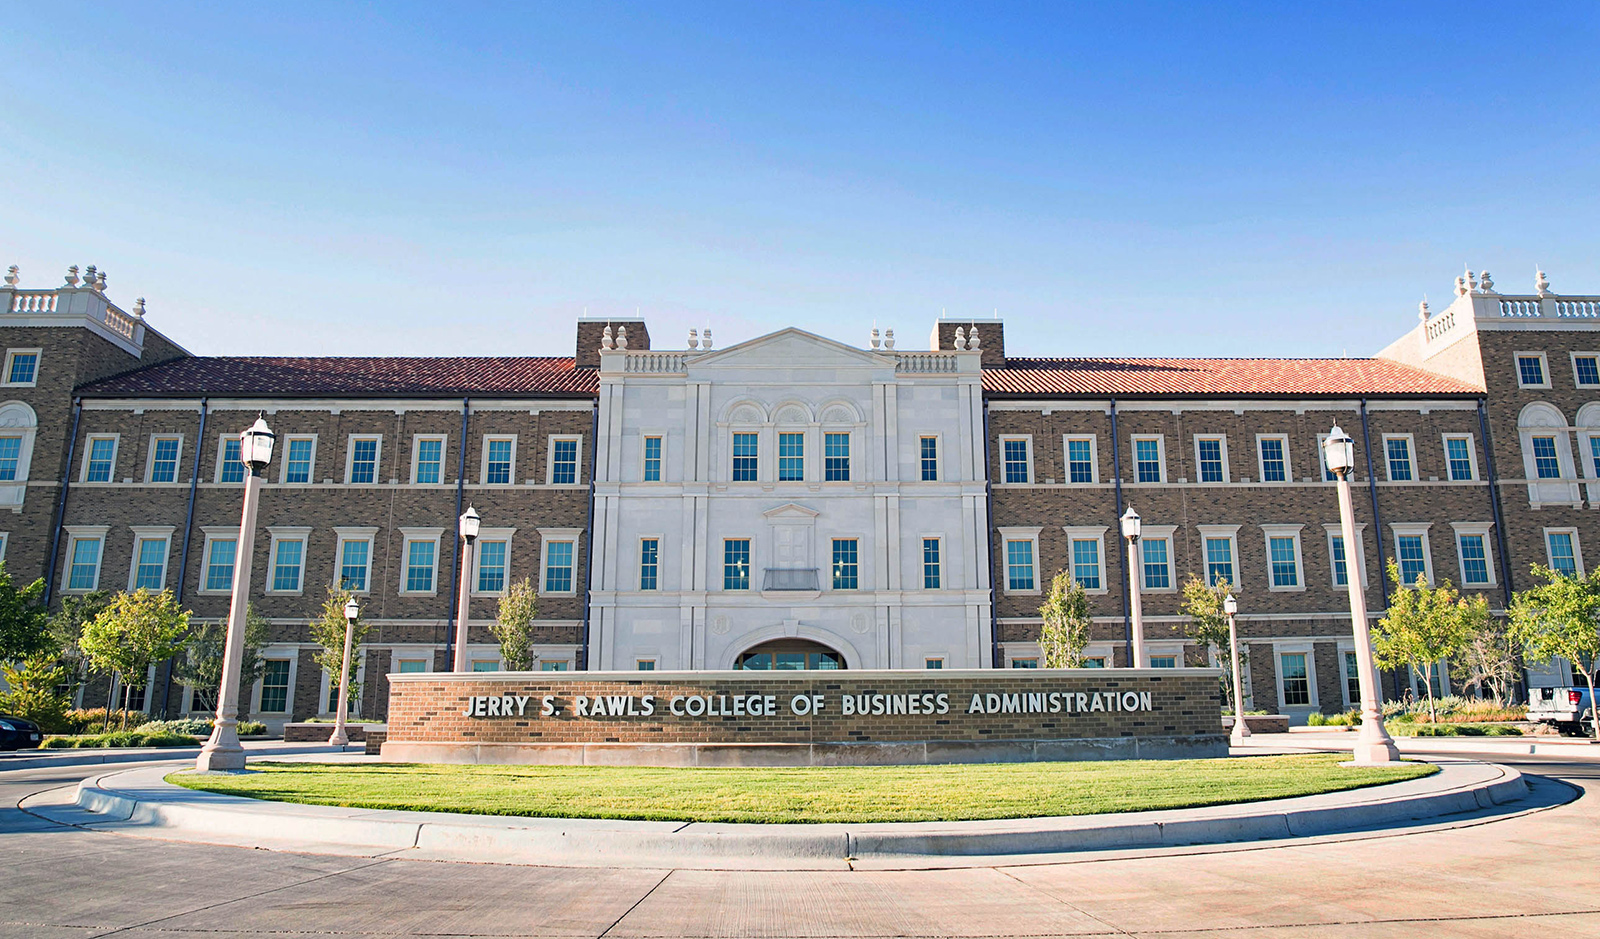 Texas Tech University | Jerry S. Rawls College of Business